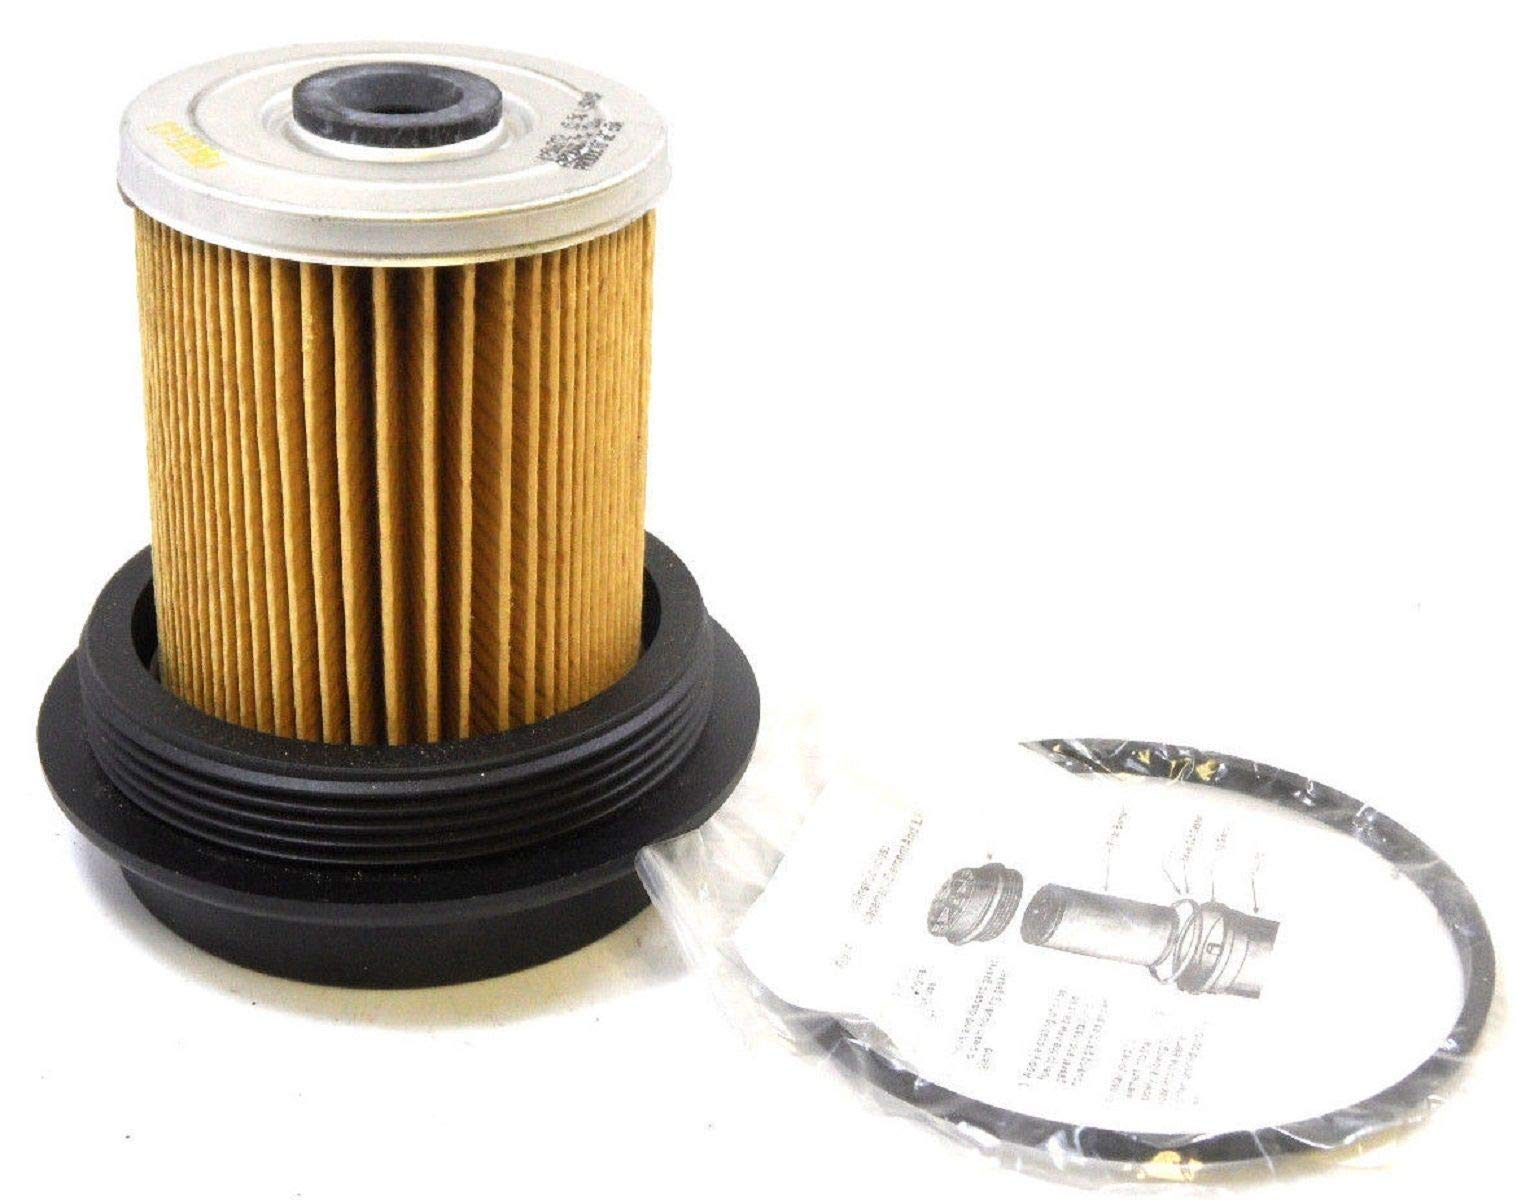 Luber-finer L4595F Heavy Duty Fuel Filter by Luber-finer